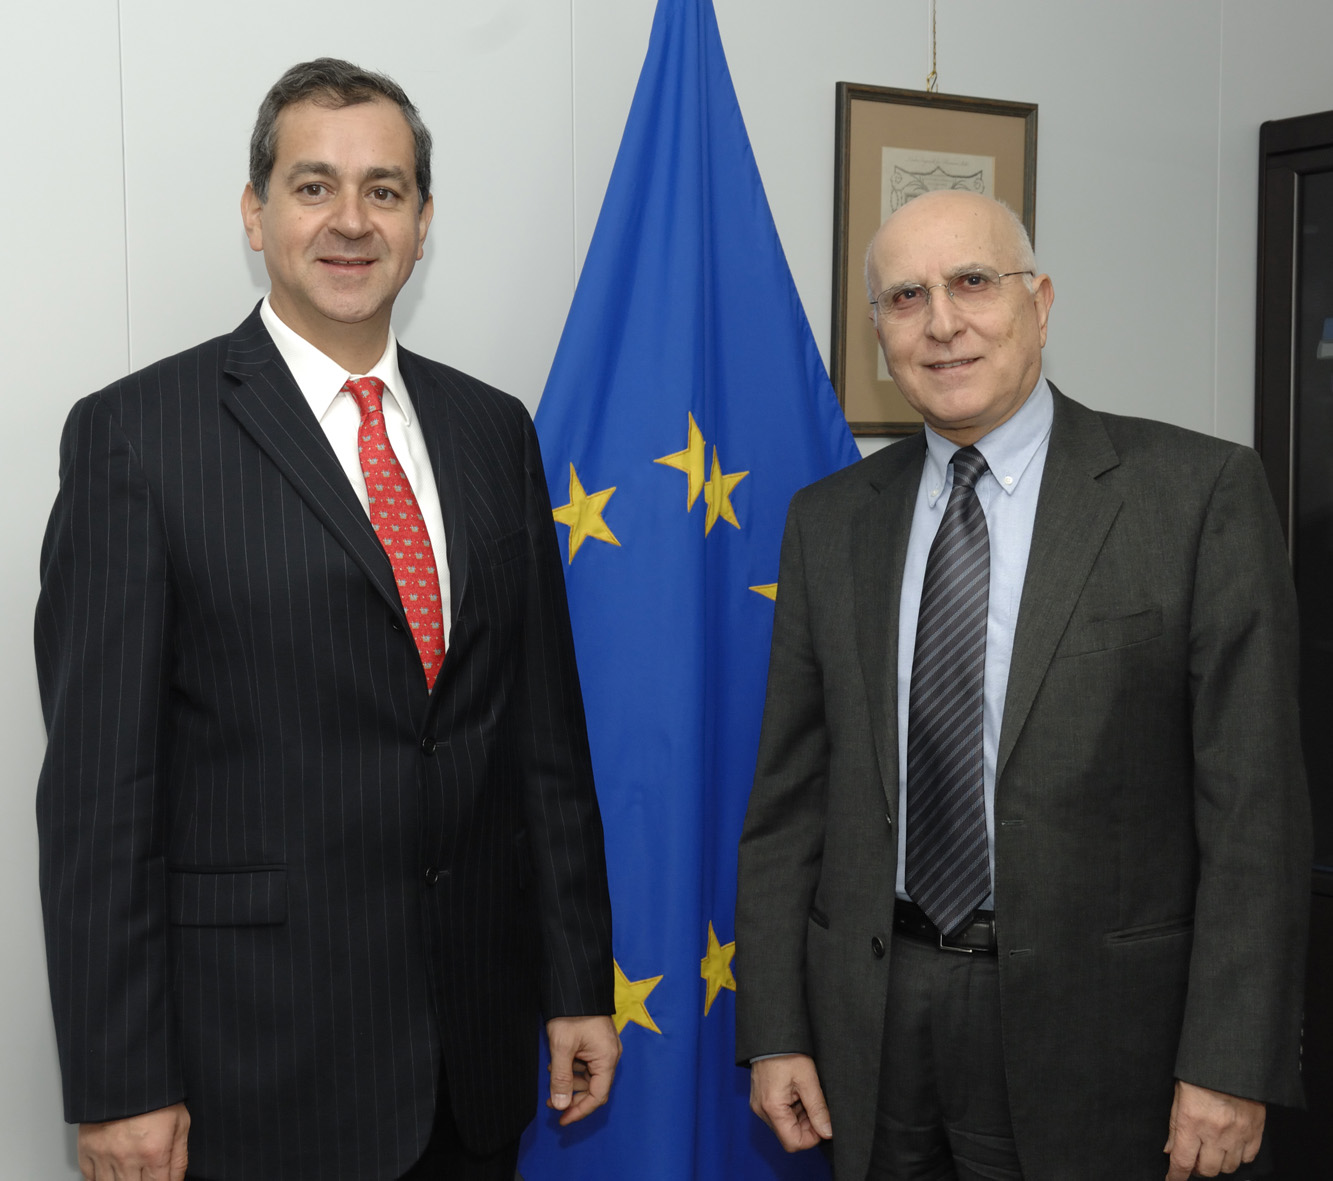 Visit by Juan Rafael Elvira Quesada, Mexican Secretary for Environment and Natural Resources, to the EC